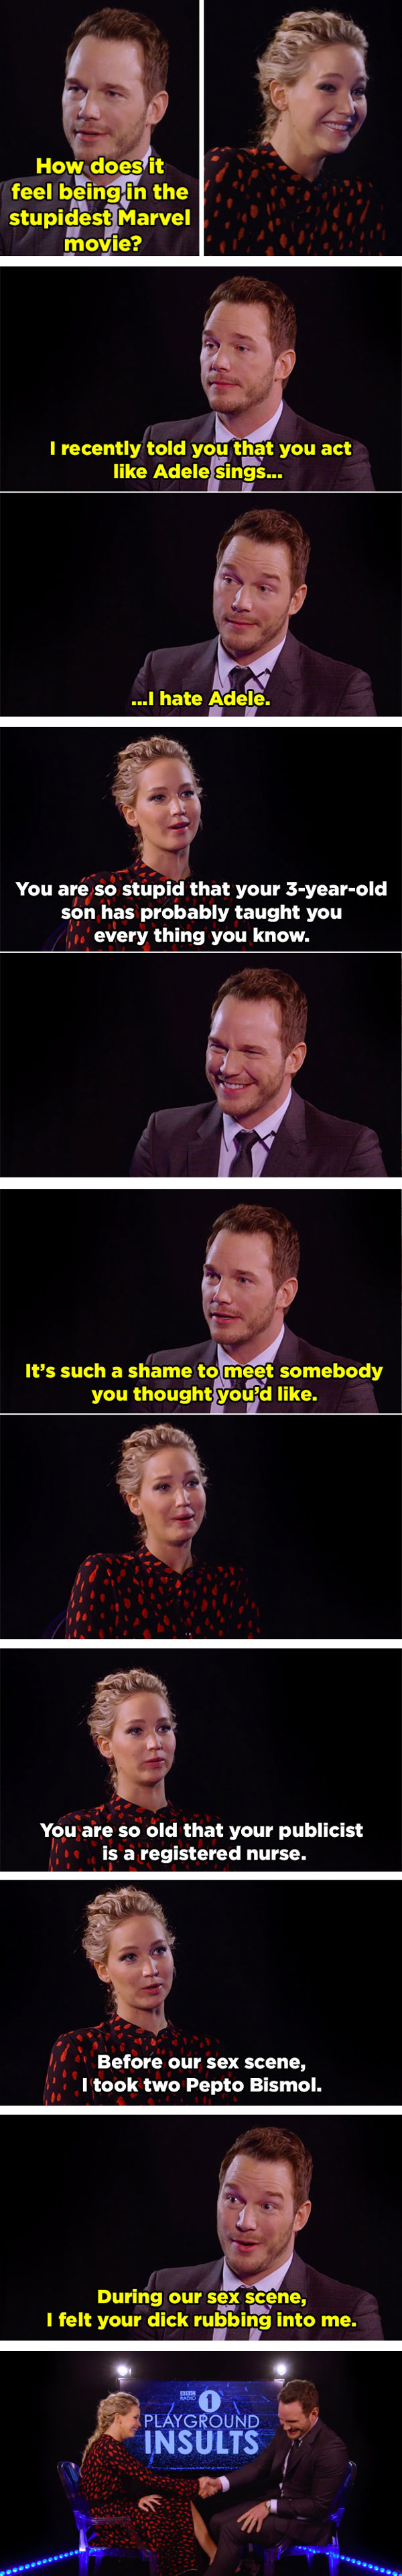 JLaw and Star Lord dish out the best insults